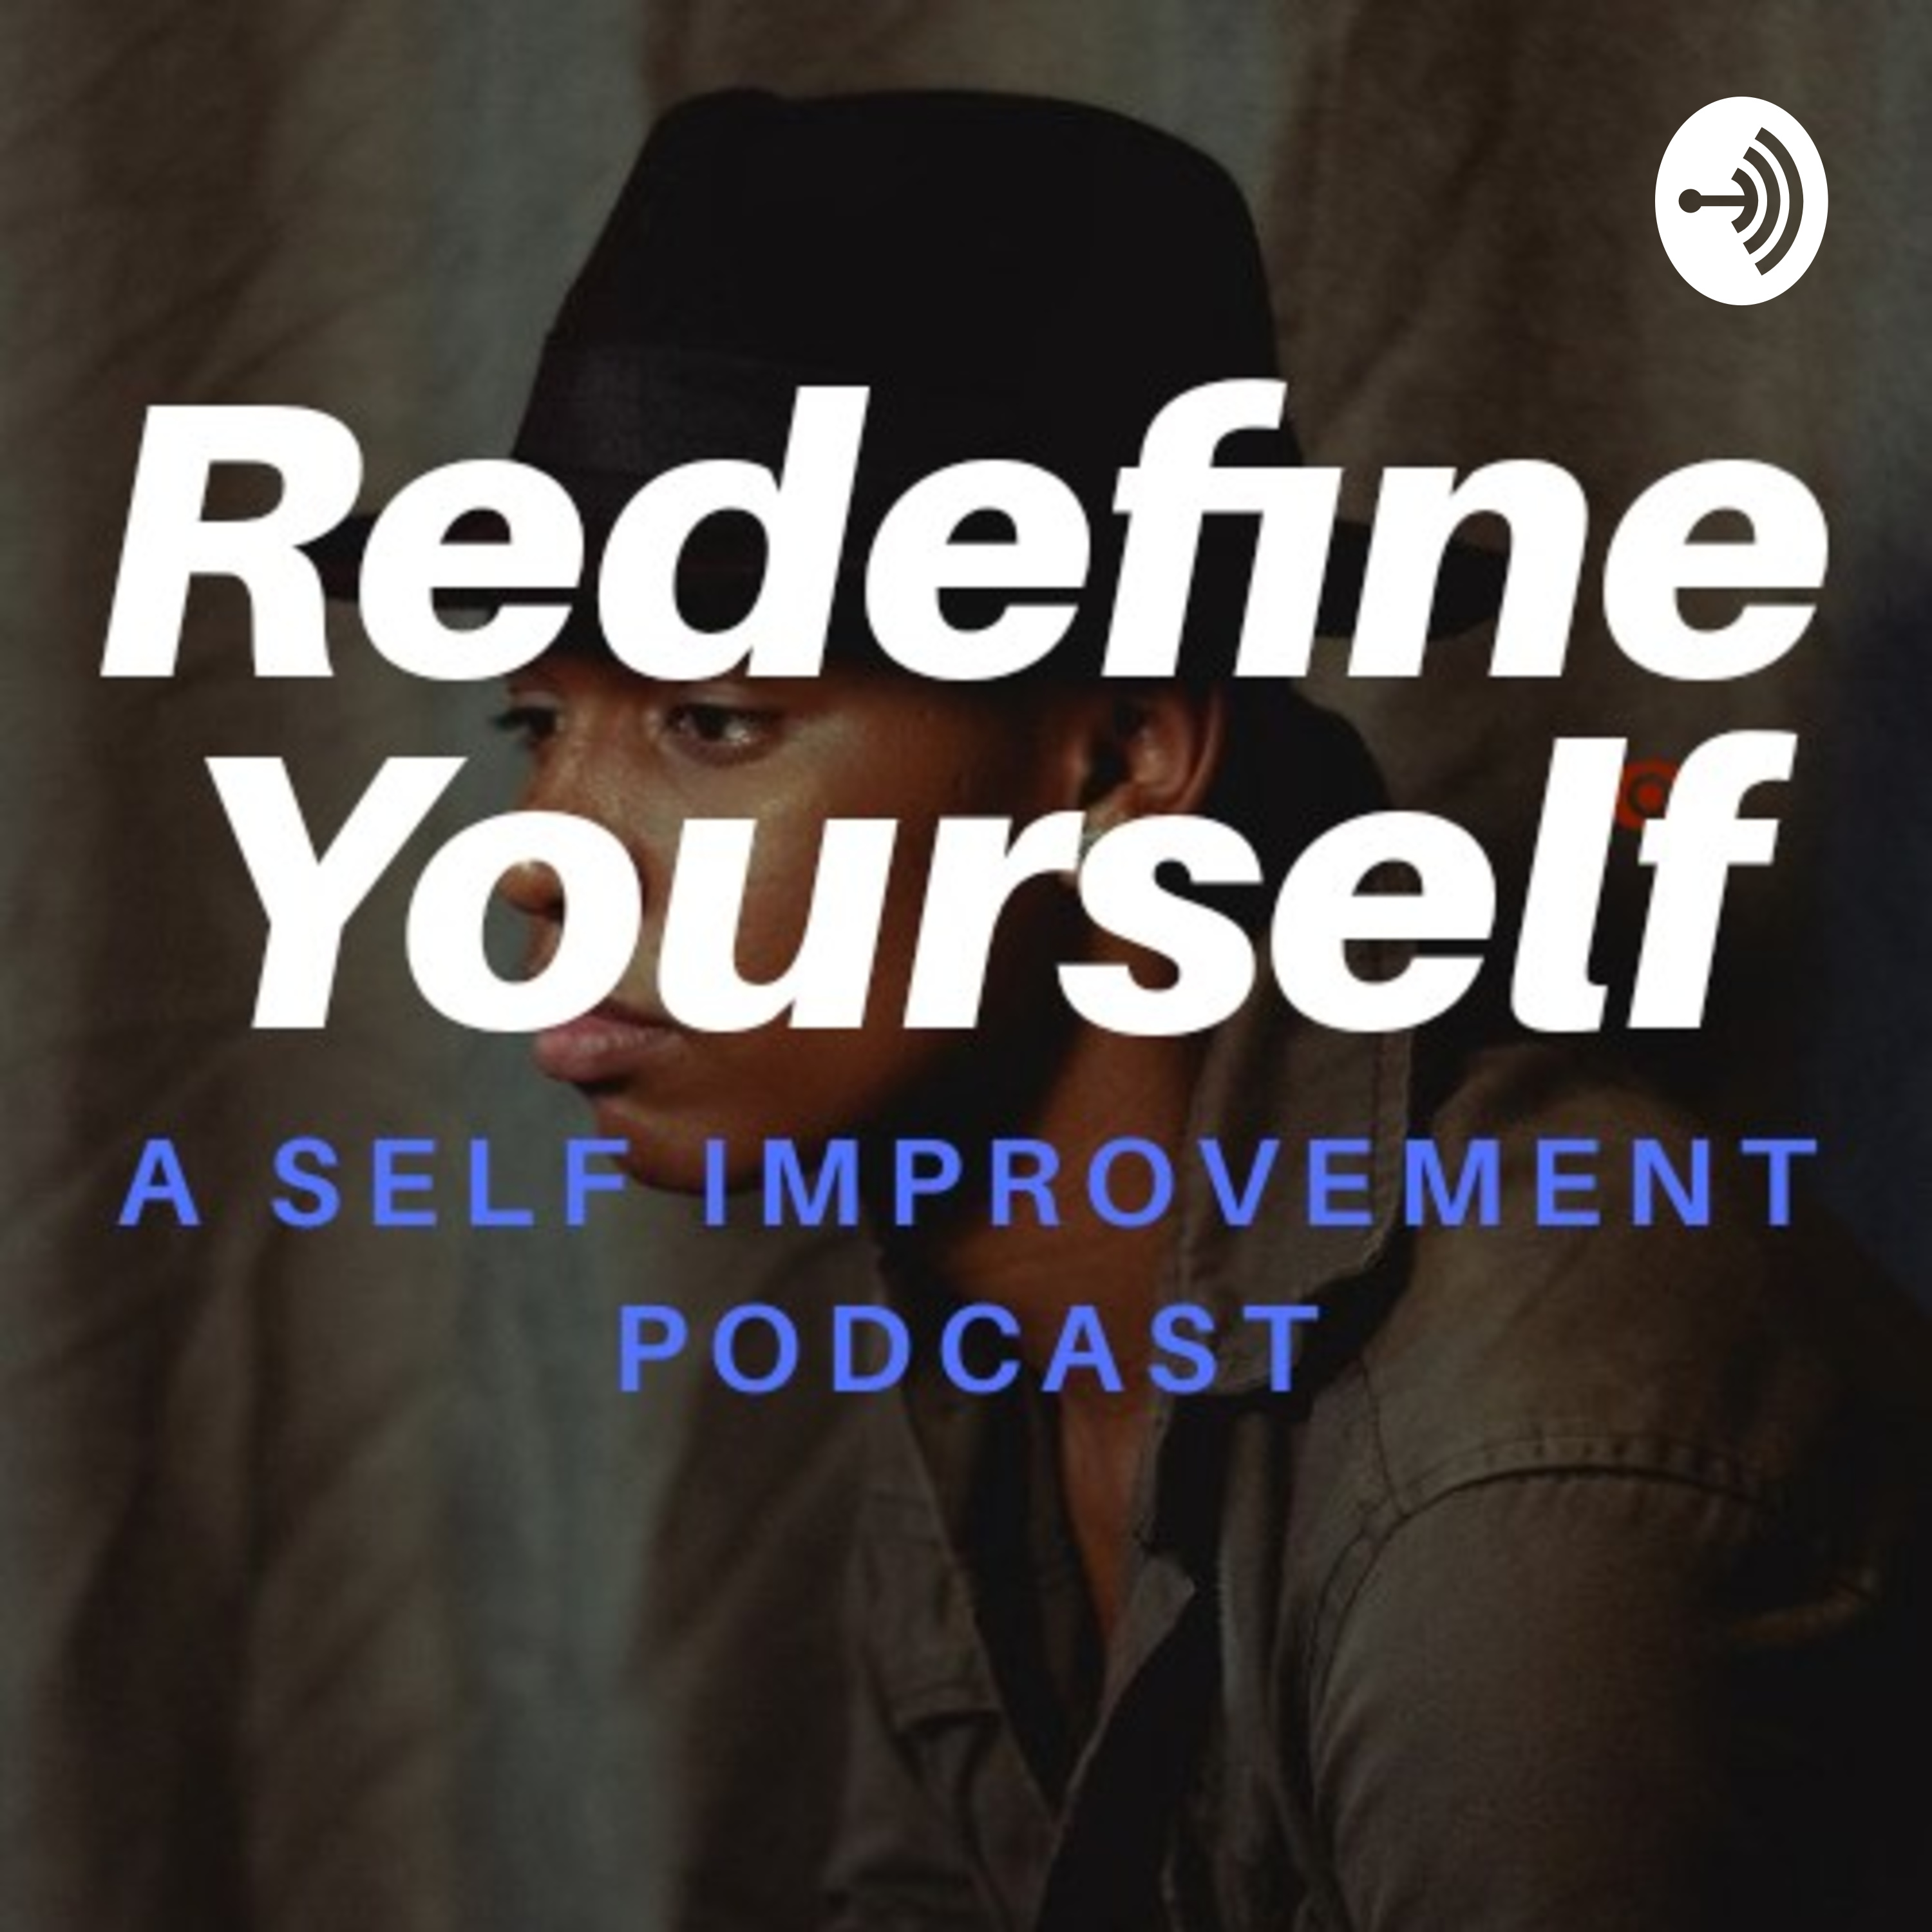 Redefine Yourself podcast